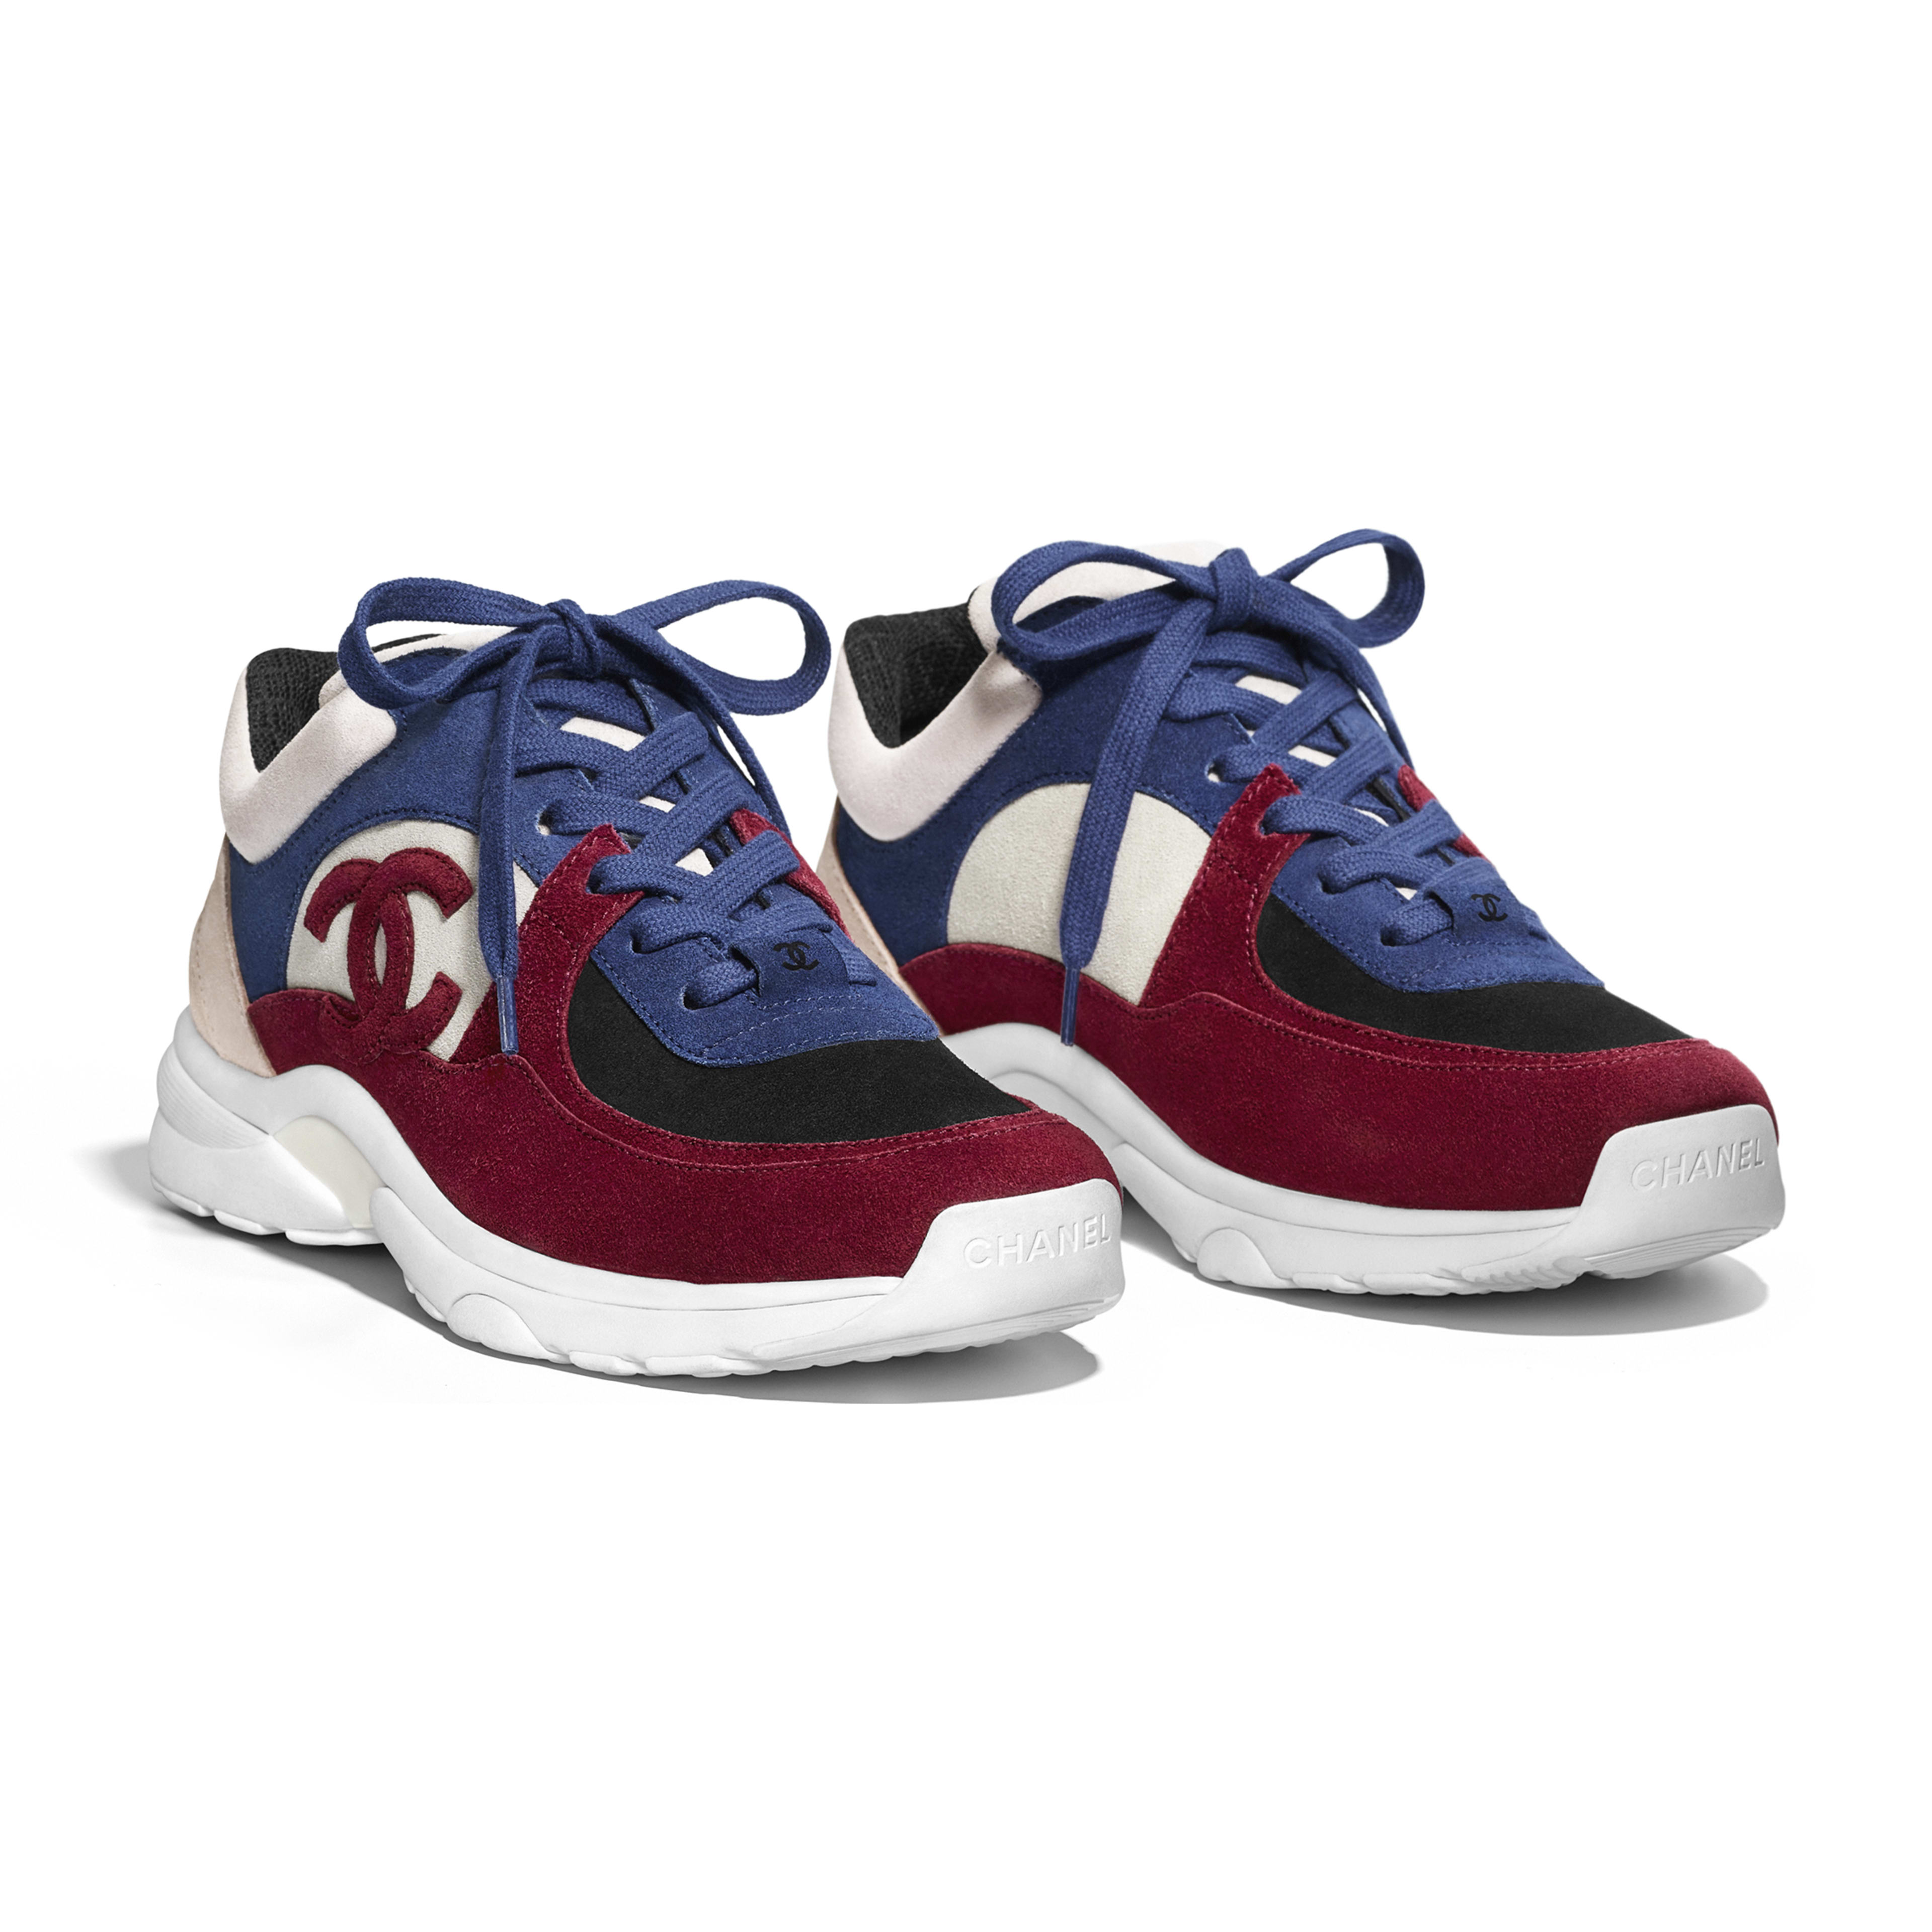 Sneakers - Navy Blue & Red - Suede Calfskin - Alternative view - see full sized version